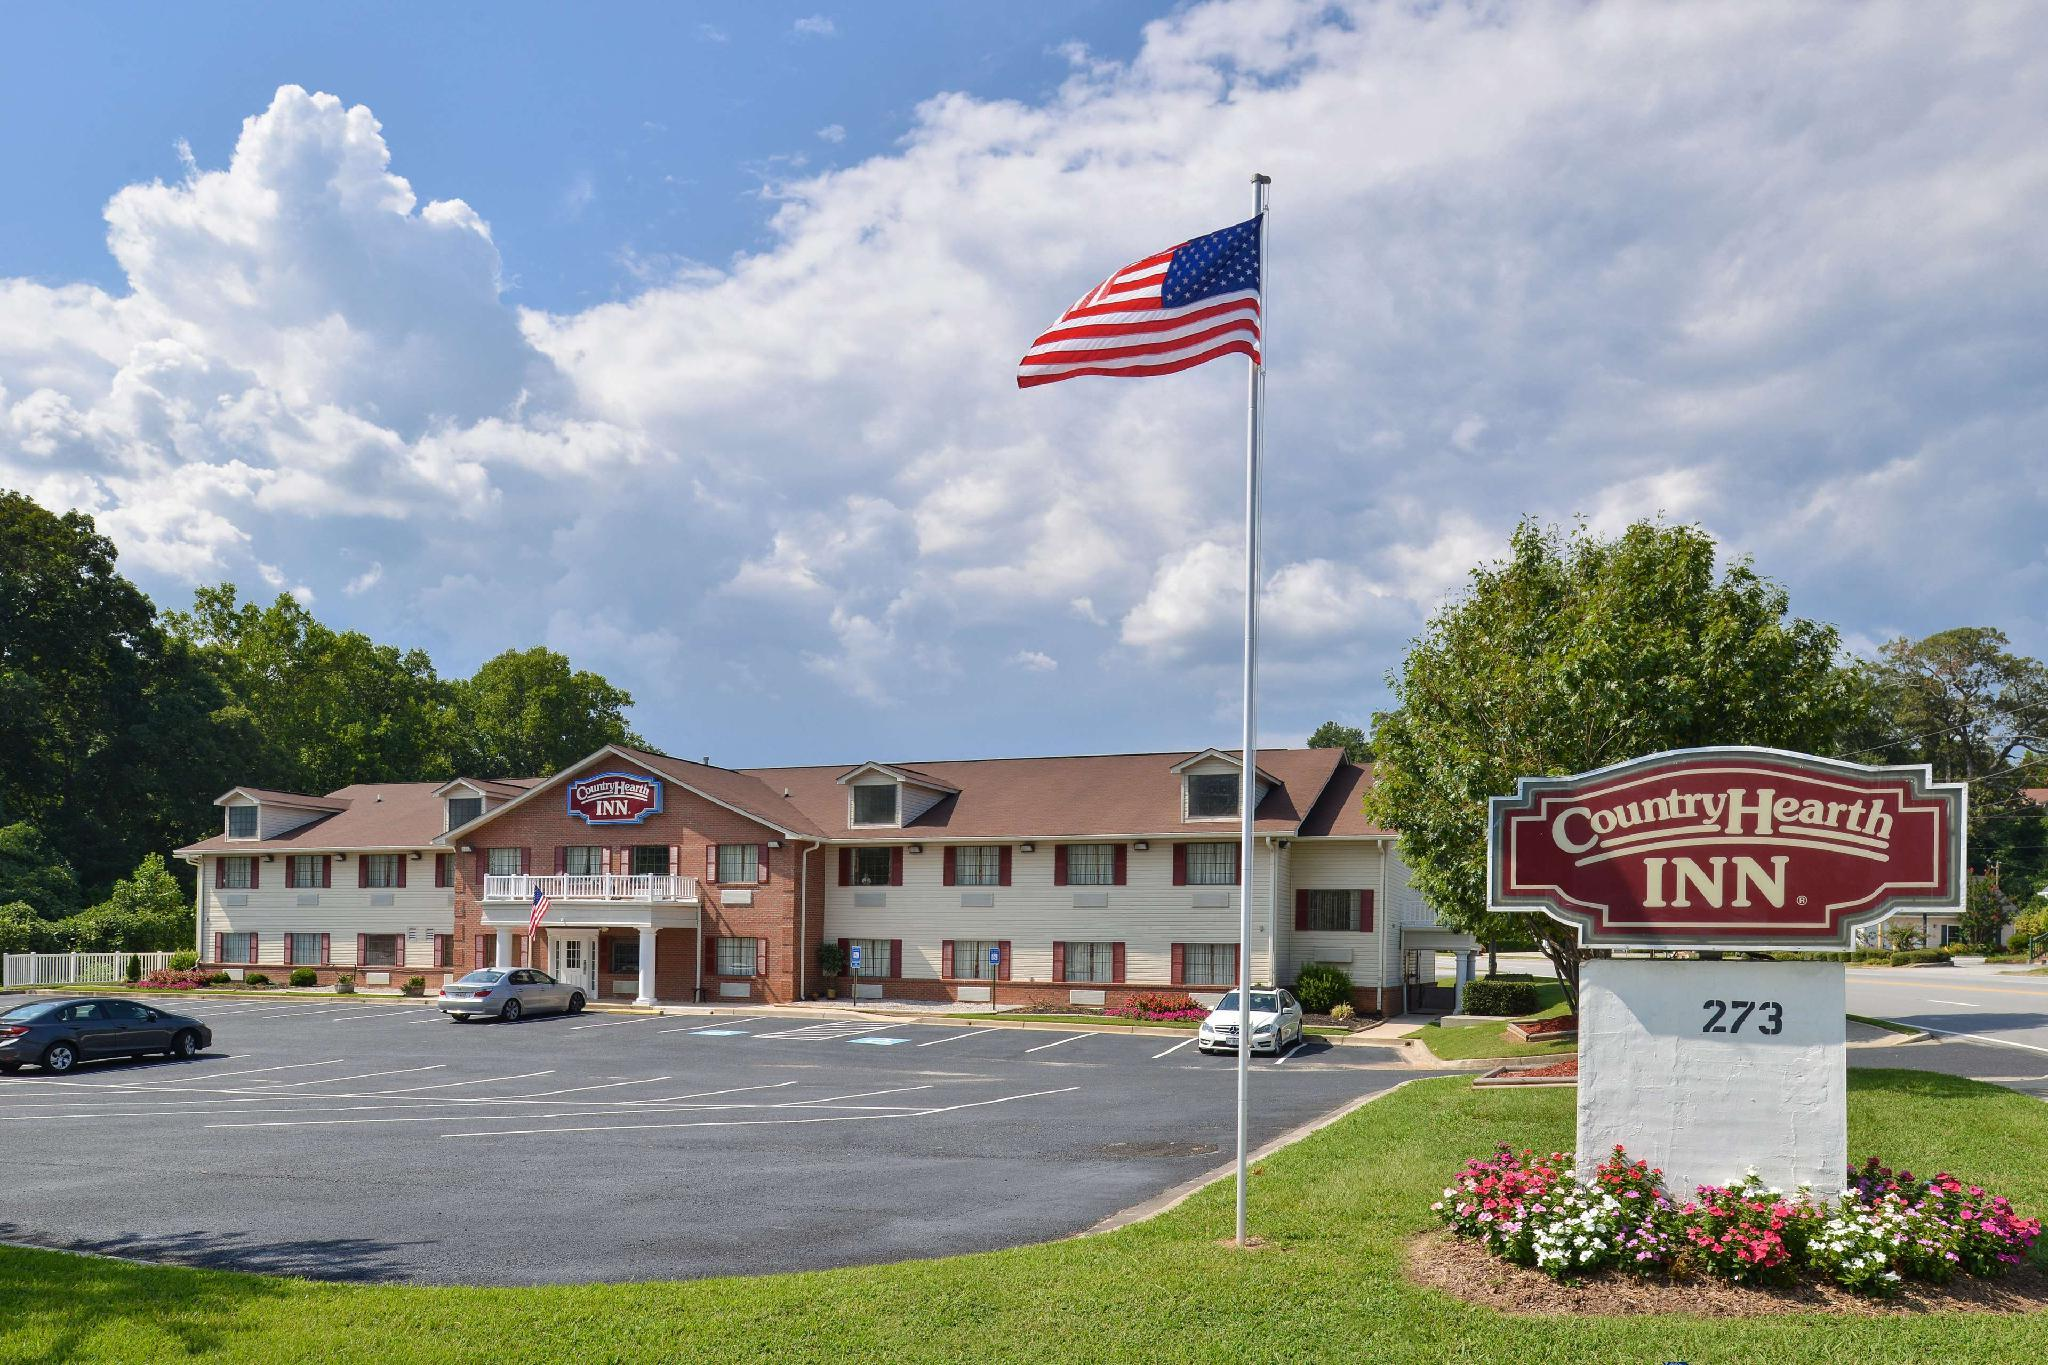 Country Hearth Inn And Suites Toccoa